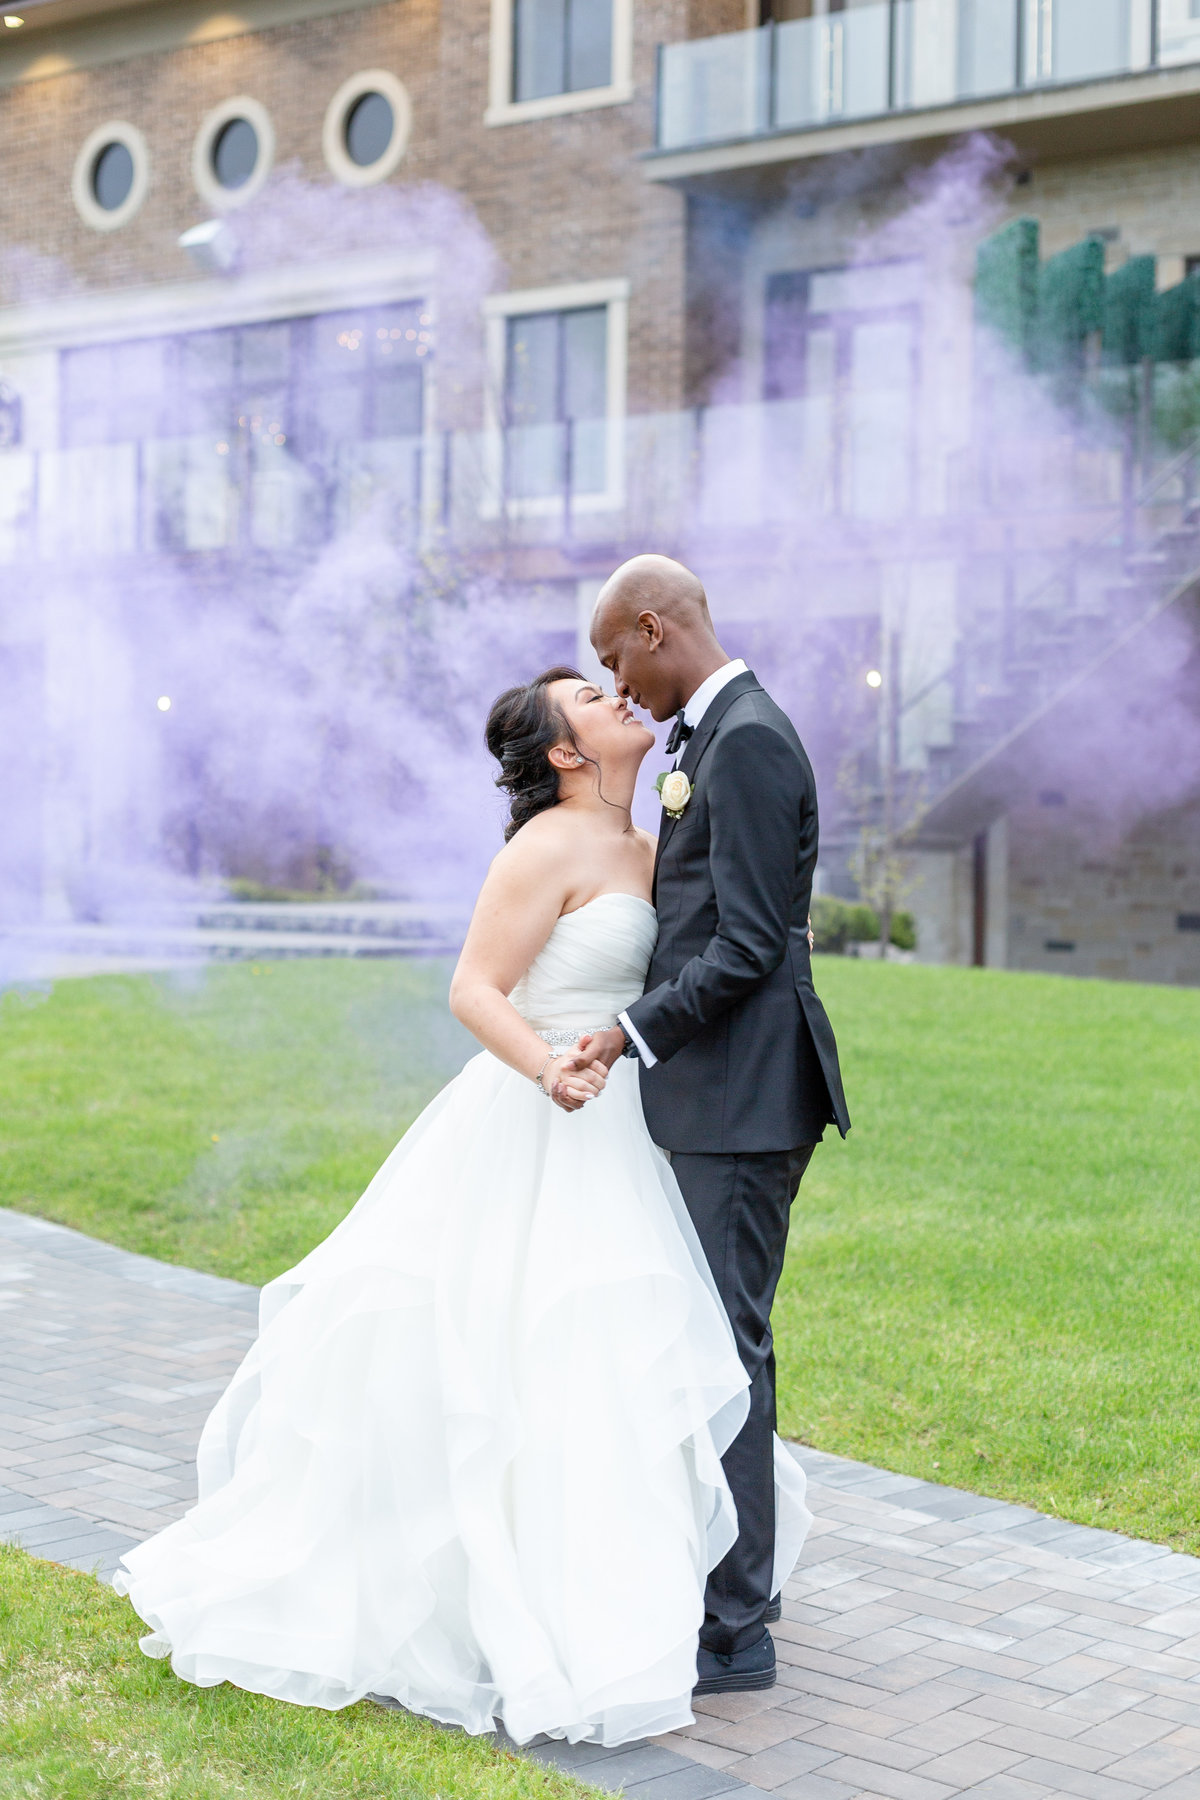 arlington-estae-Vicky-and-Emmanuel-Wedding-Bride-and-Groom-Chris-and-Micaela-Photography-186